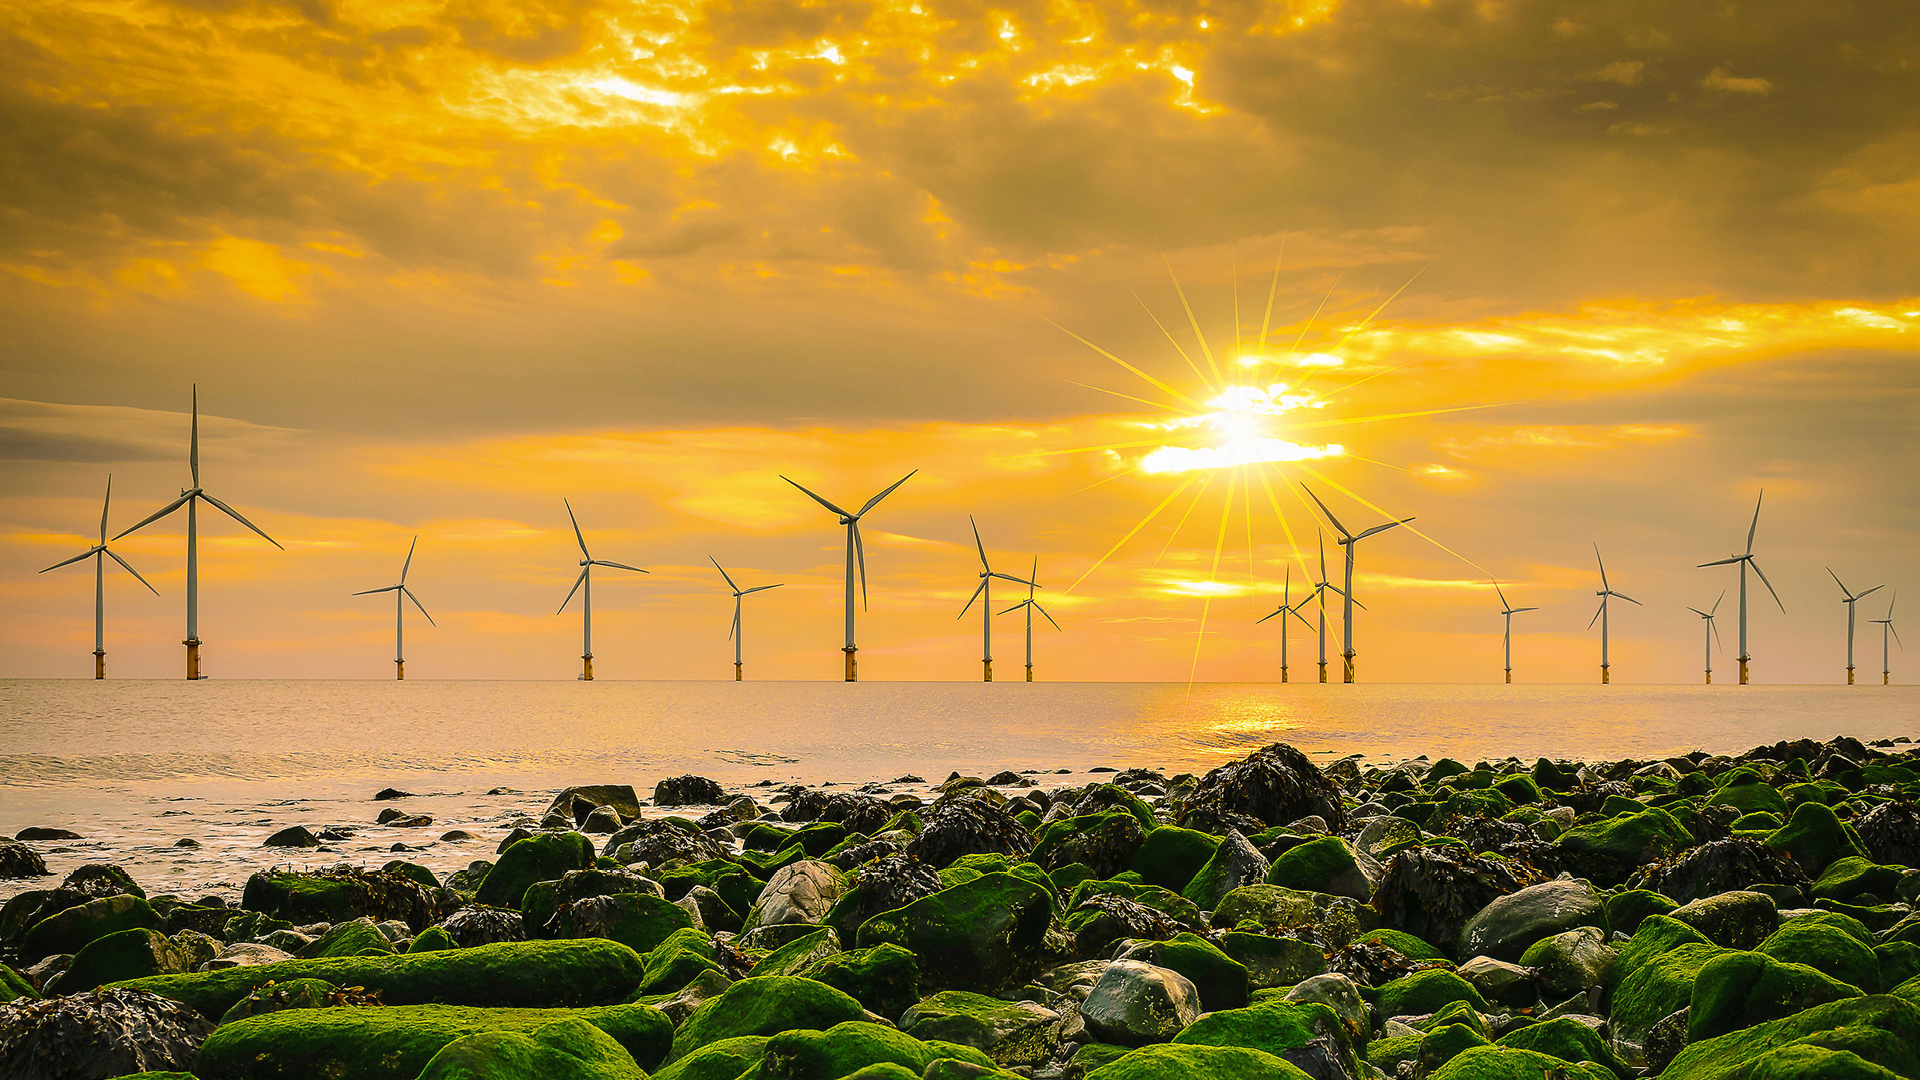 Offshore windfarm with a sunset